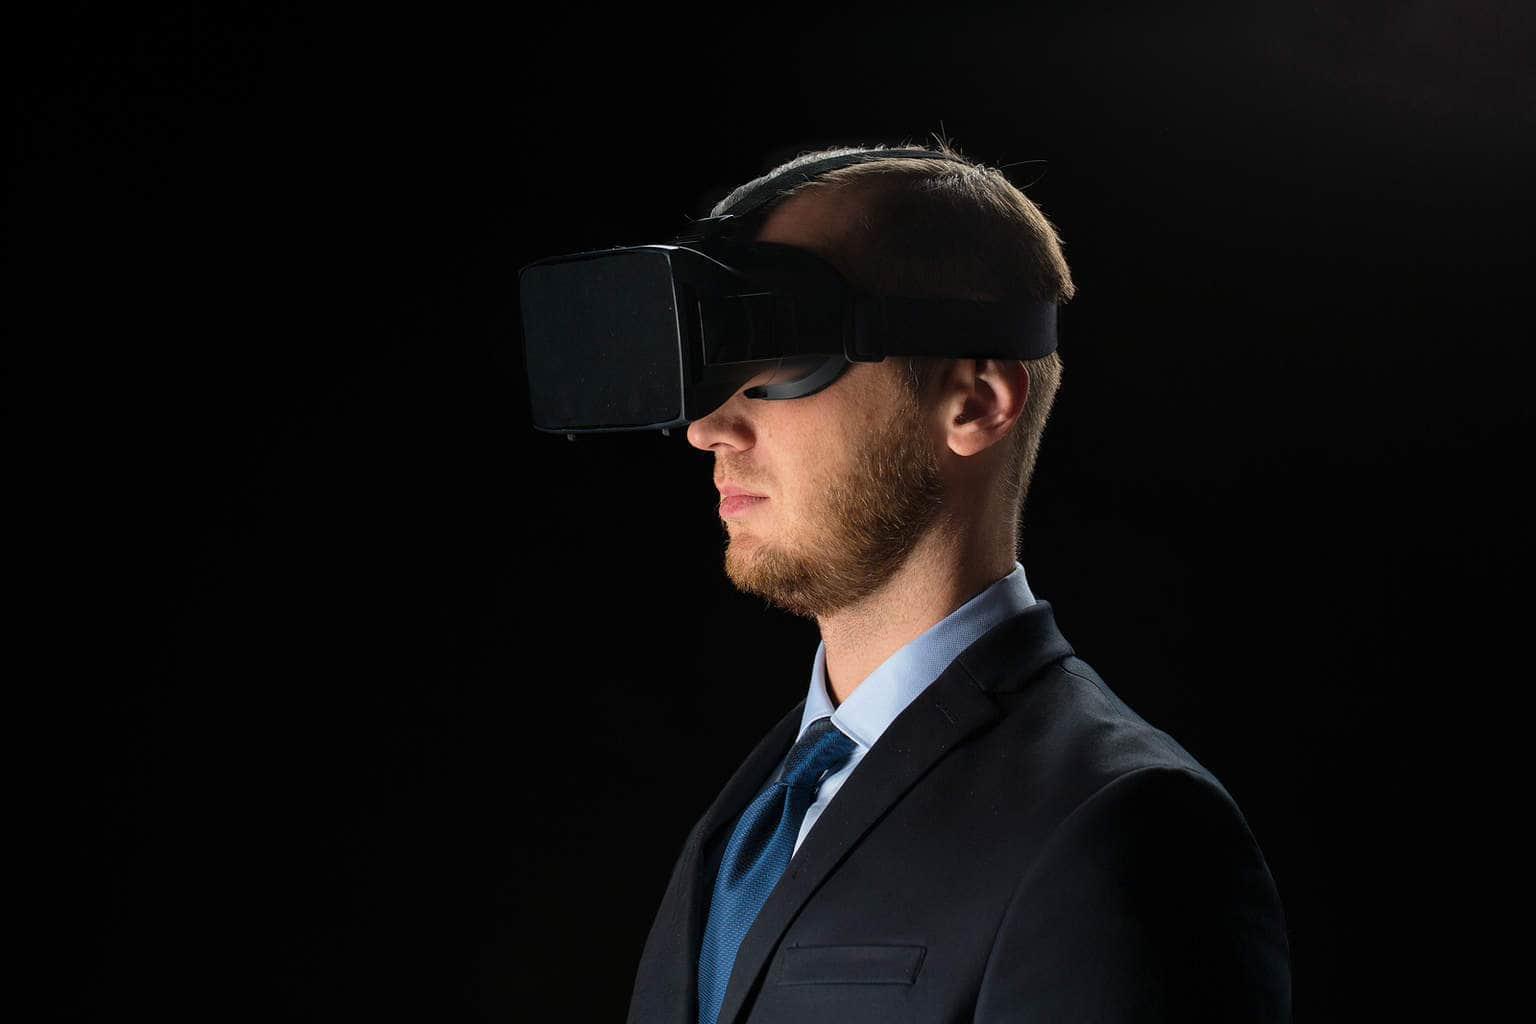 3d technology, virtual reality, cyberspace and augmented reality